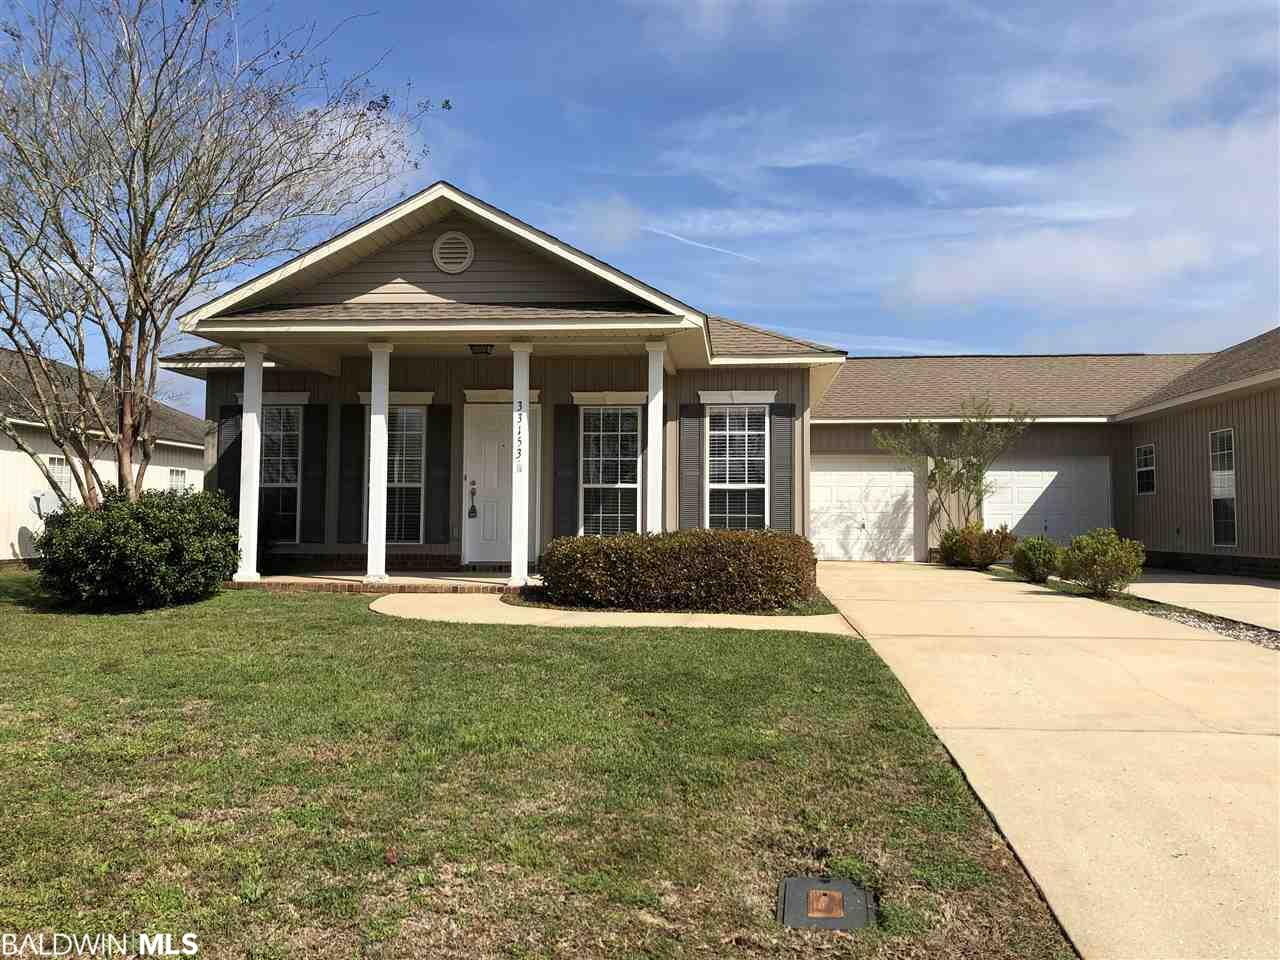 33153 Stables Drive A, Spanish Fort, AL 36527